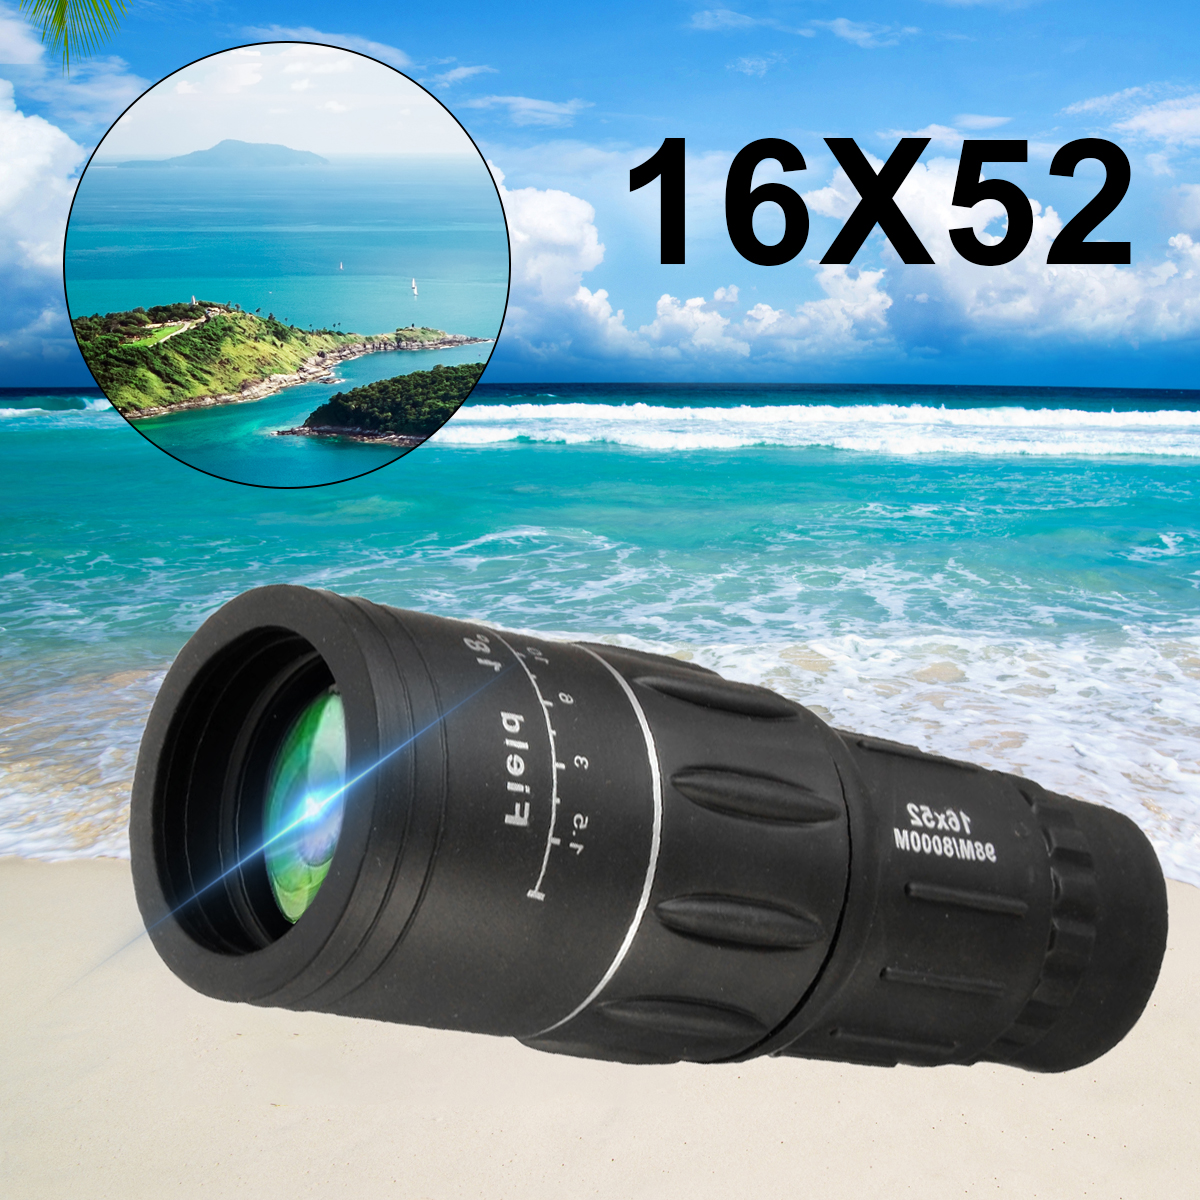 16x52 HD Handheld Monocular Telescope Day Night outdooraccessorie Vision Dual Focus Optical Zoom Waterproof For Hiking Camping Hunting Sightseeing Portable Valentine's gift